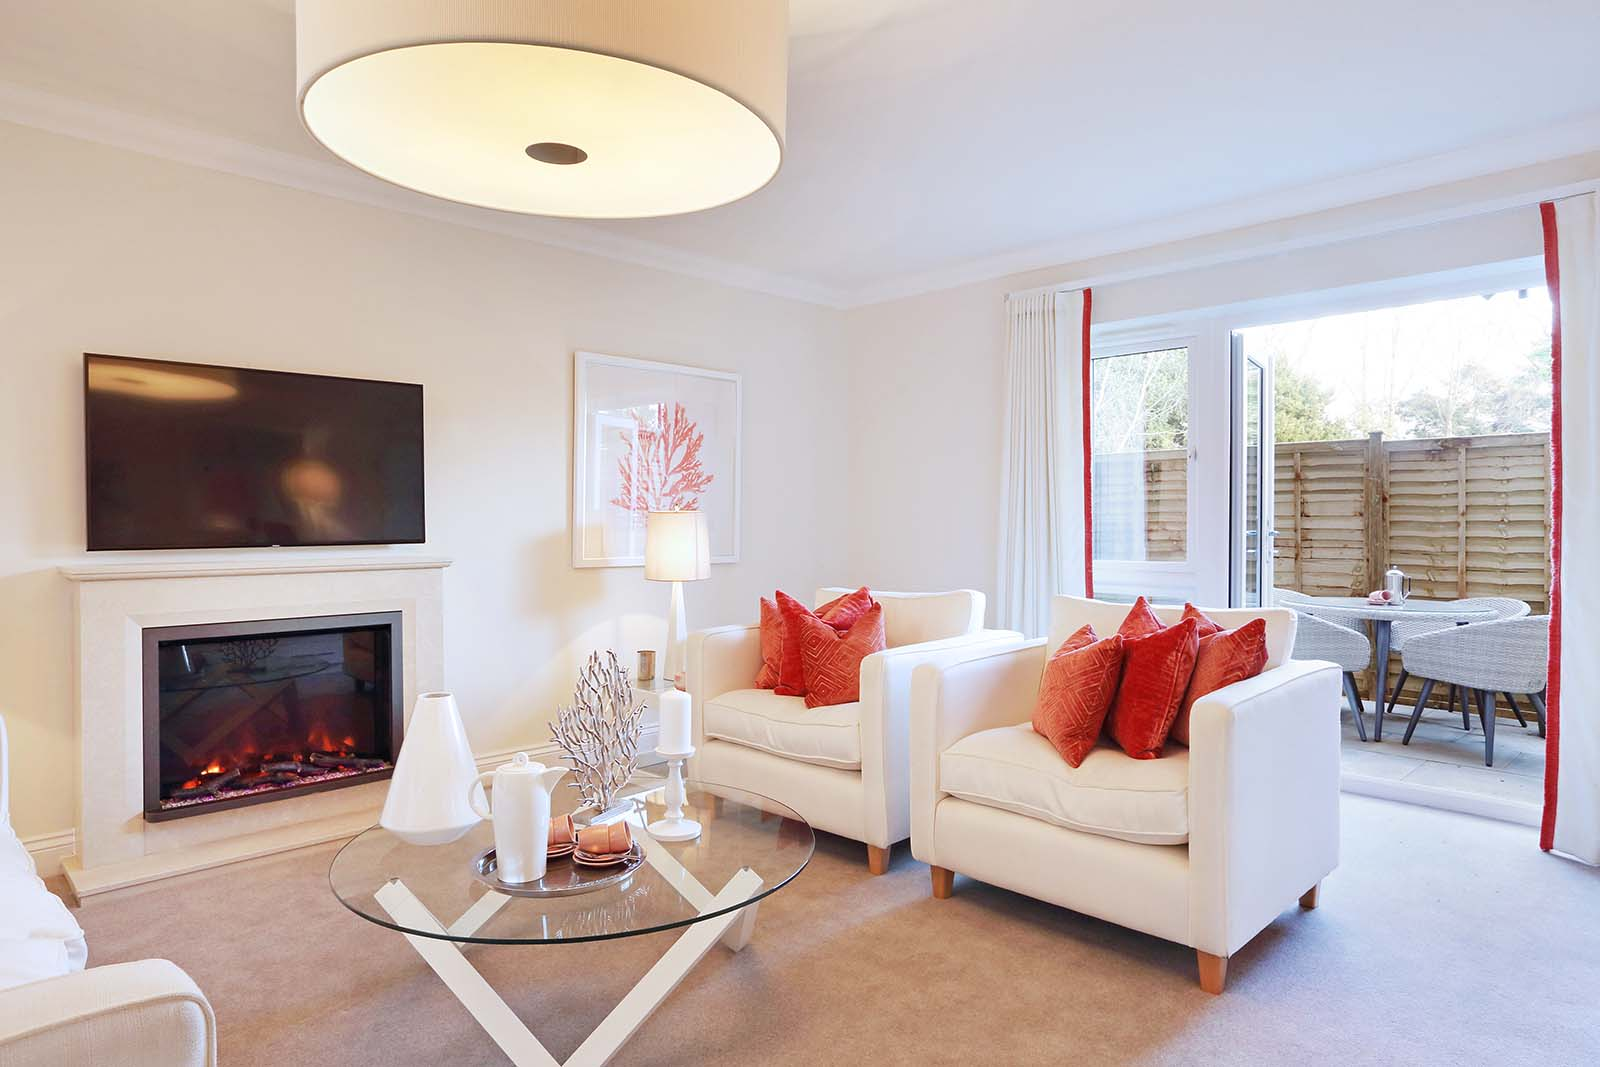 MANOR HOUSE HOTEL CONVERSION IN GODALMING